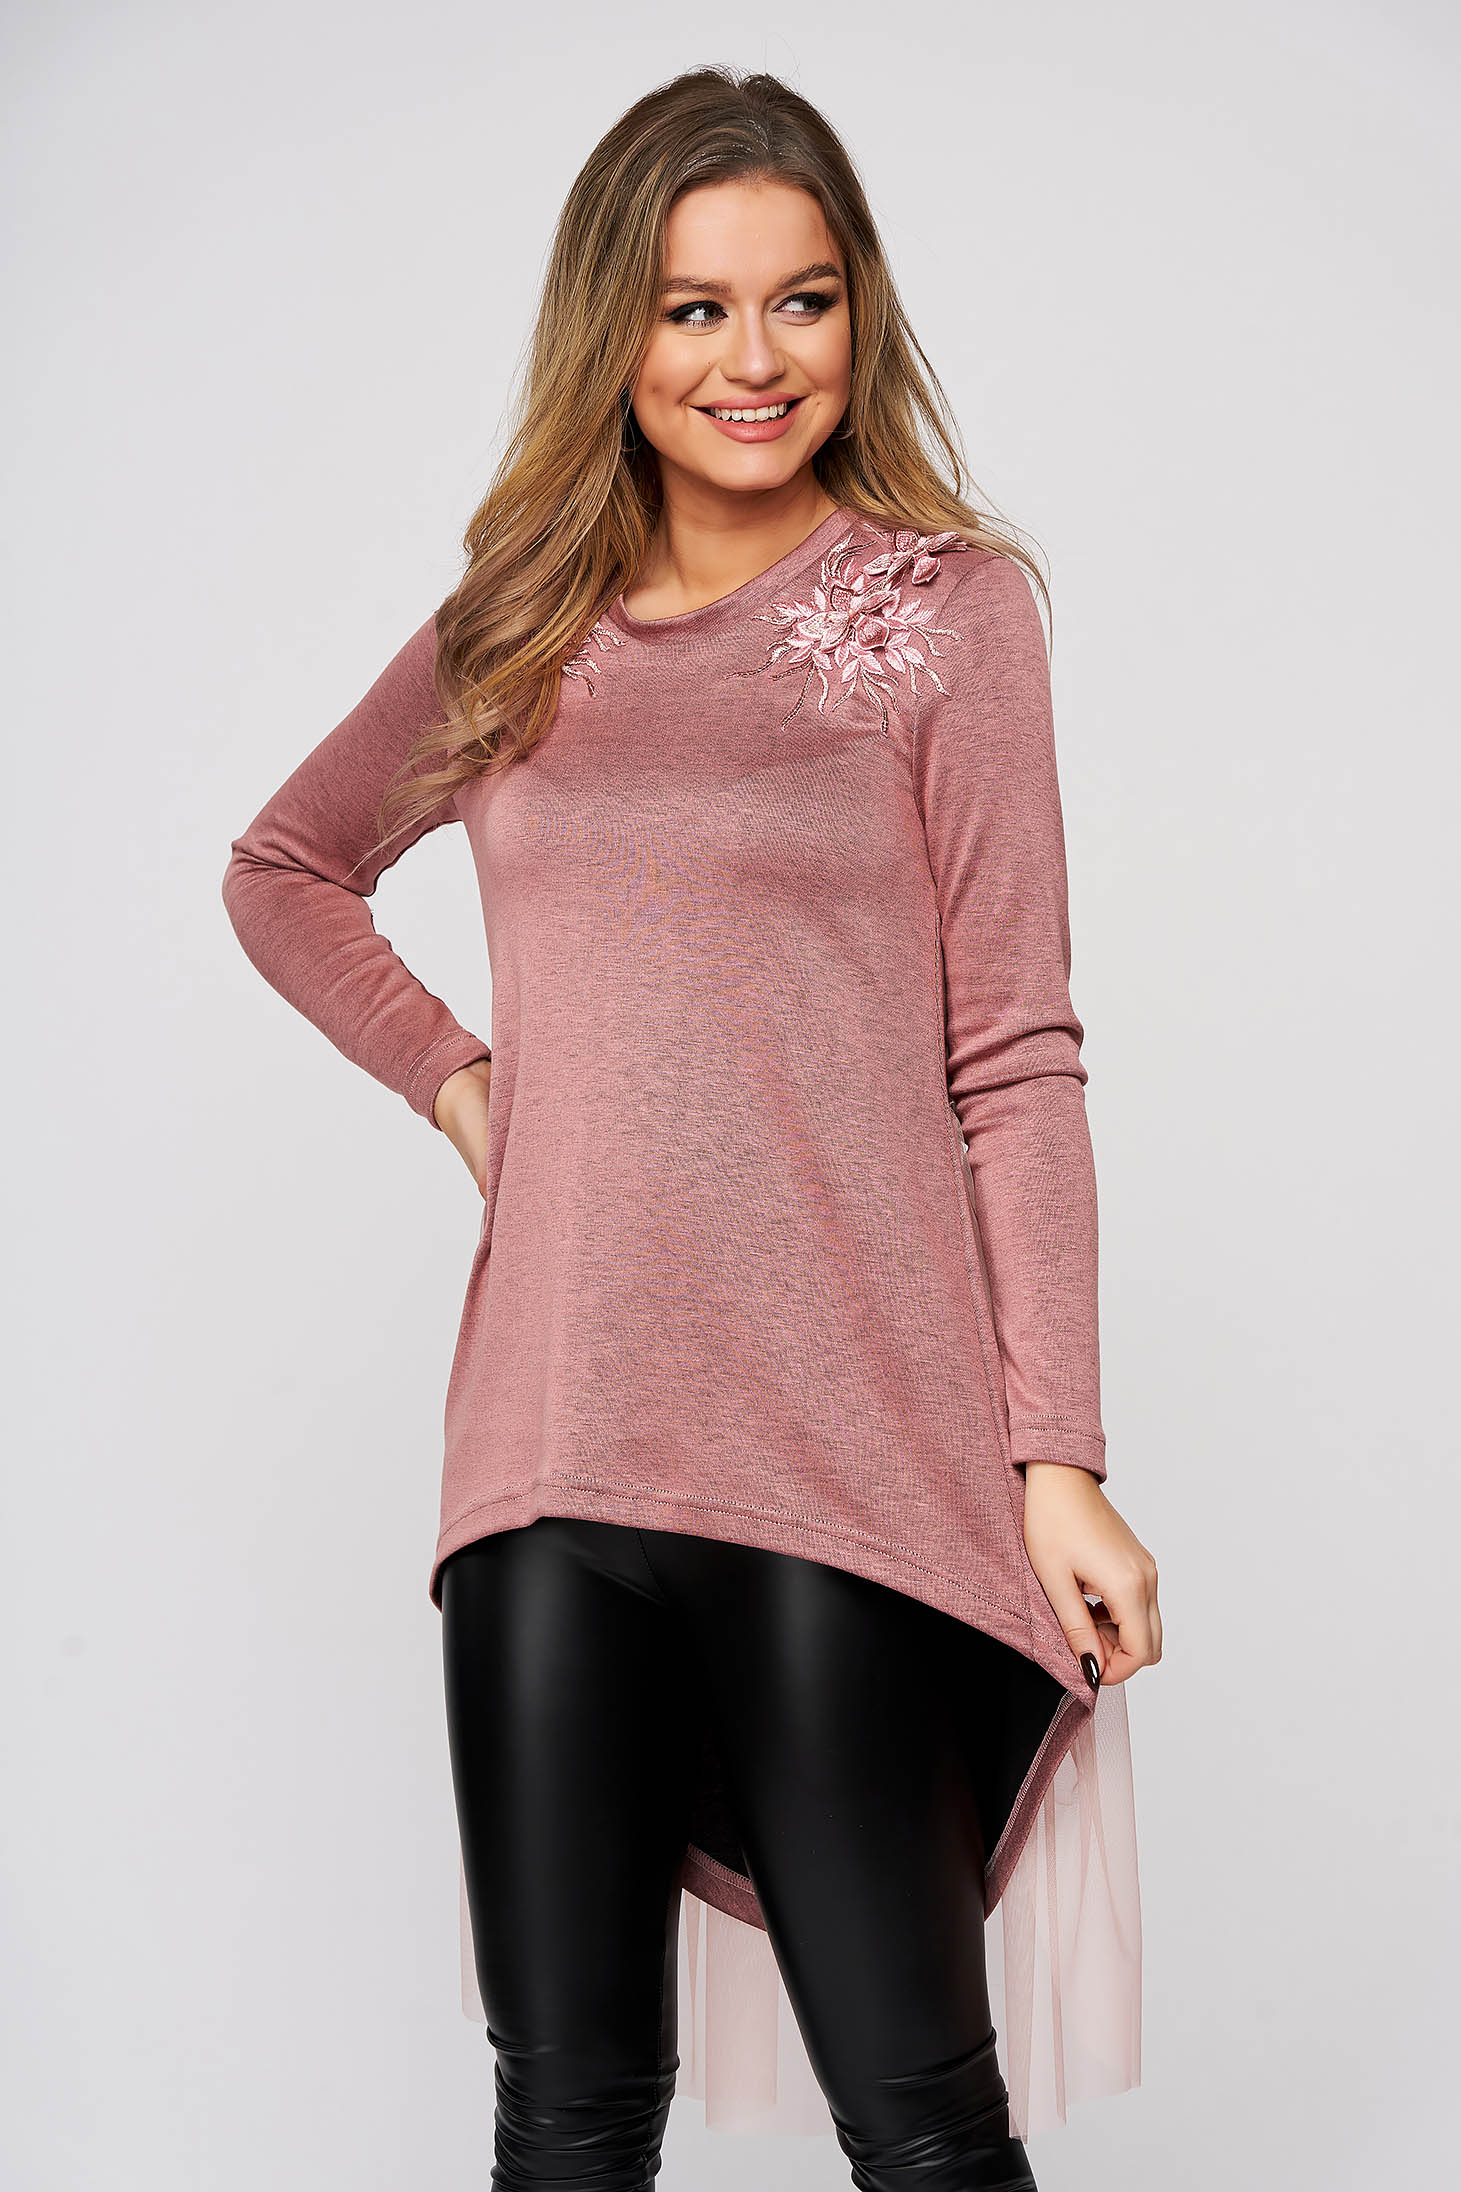 Women`s blouse StarShinerS lightpink asymmetrical flared with net accessory with crystal embellished details